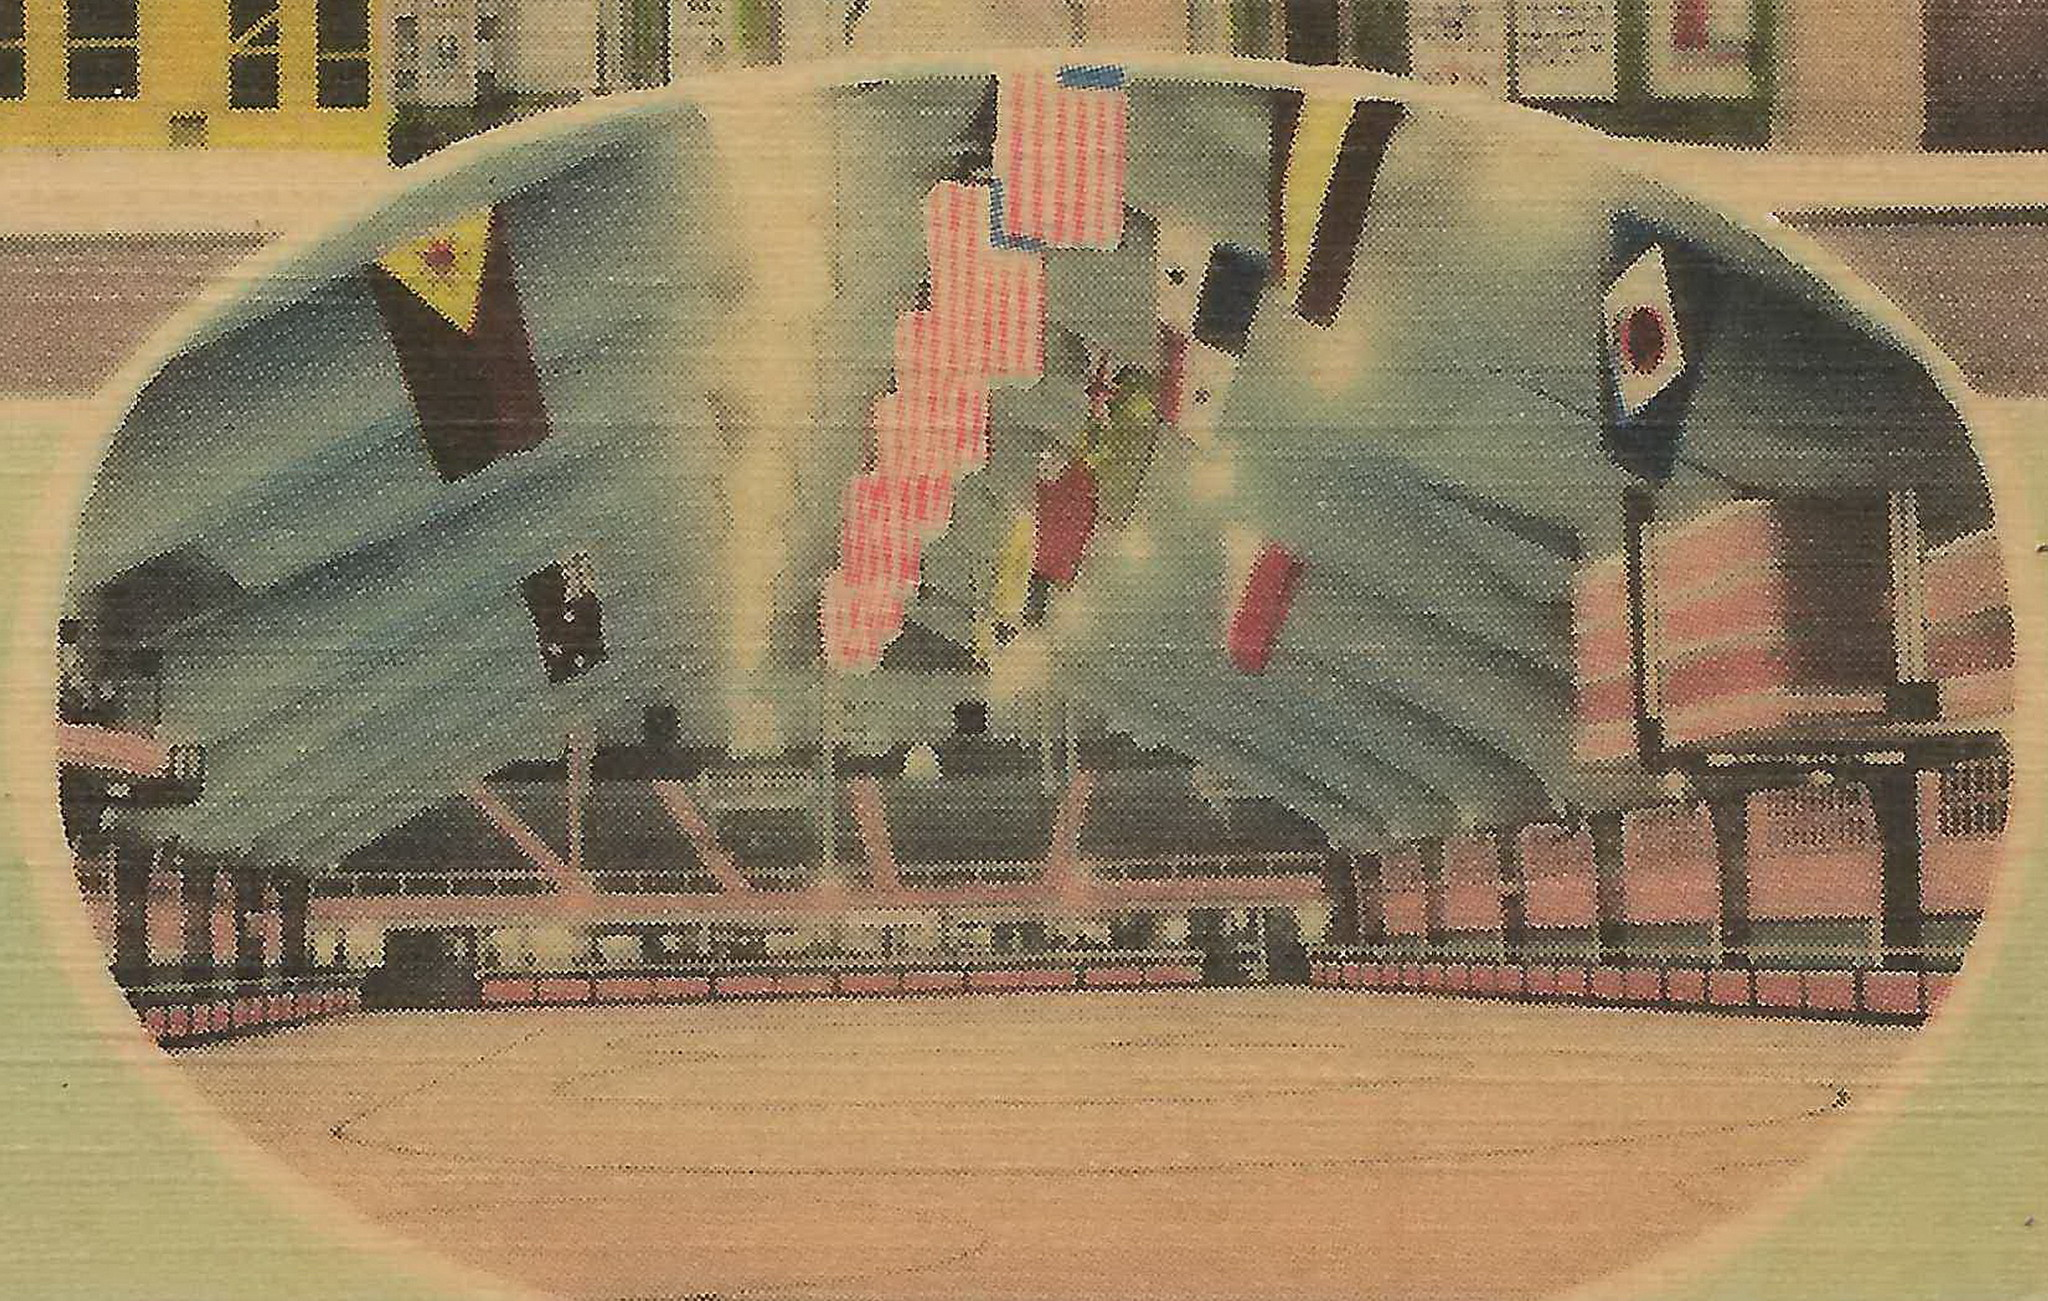 Largest Roller Skating Rink In The Usa